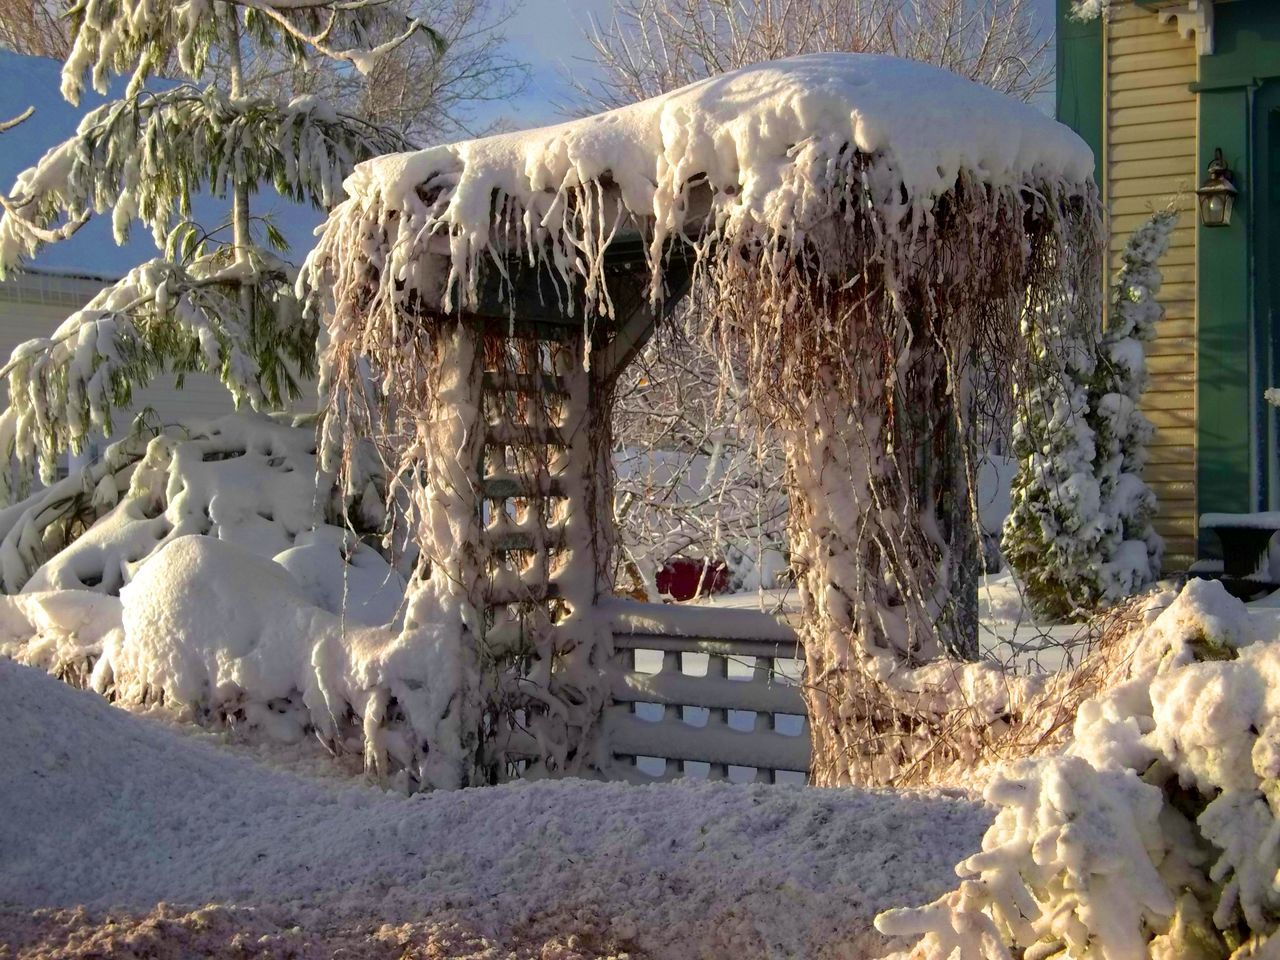 The arbor trellis after the big snow storm After The Storm Arbor Beauty In Nature Cold Temperature Day Heavy Snow On Trees Heavy Snowfall Magical Landscape Nature No People Outdoors Scenics Snow Snow Covered Snow Covered Garden Snow Storm Snowcapped Trellis Winter Winter Winter Garden Winter Storm Winter Wonderland Winter Wonderland ❄ Winter Wonders